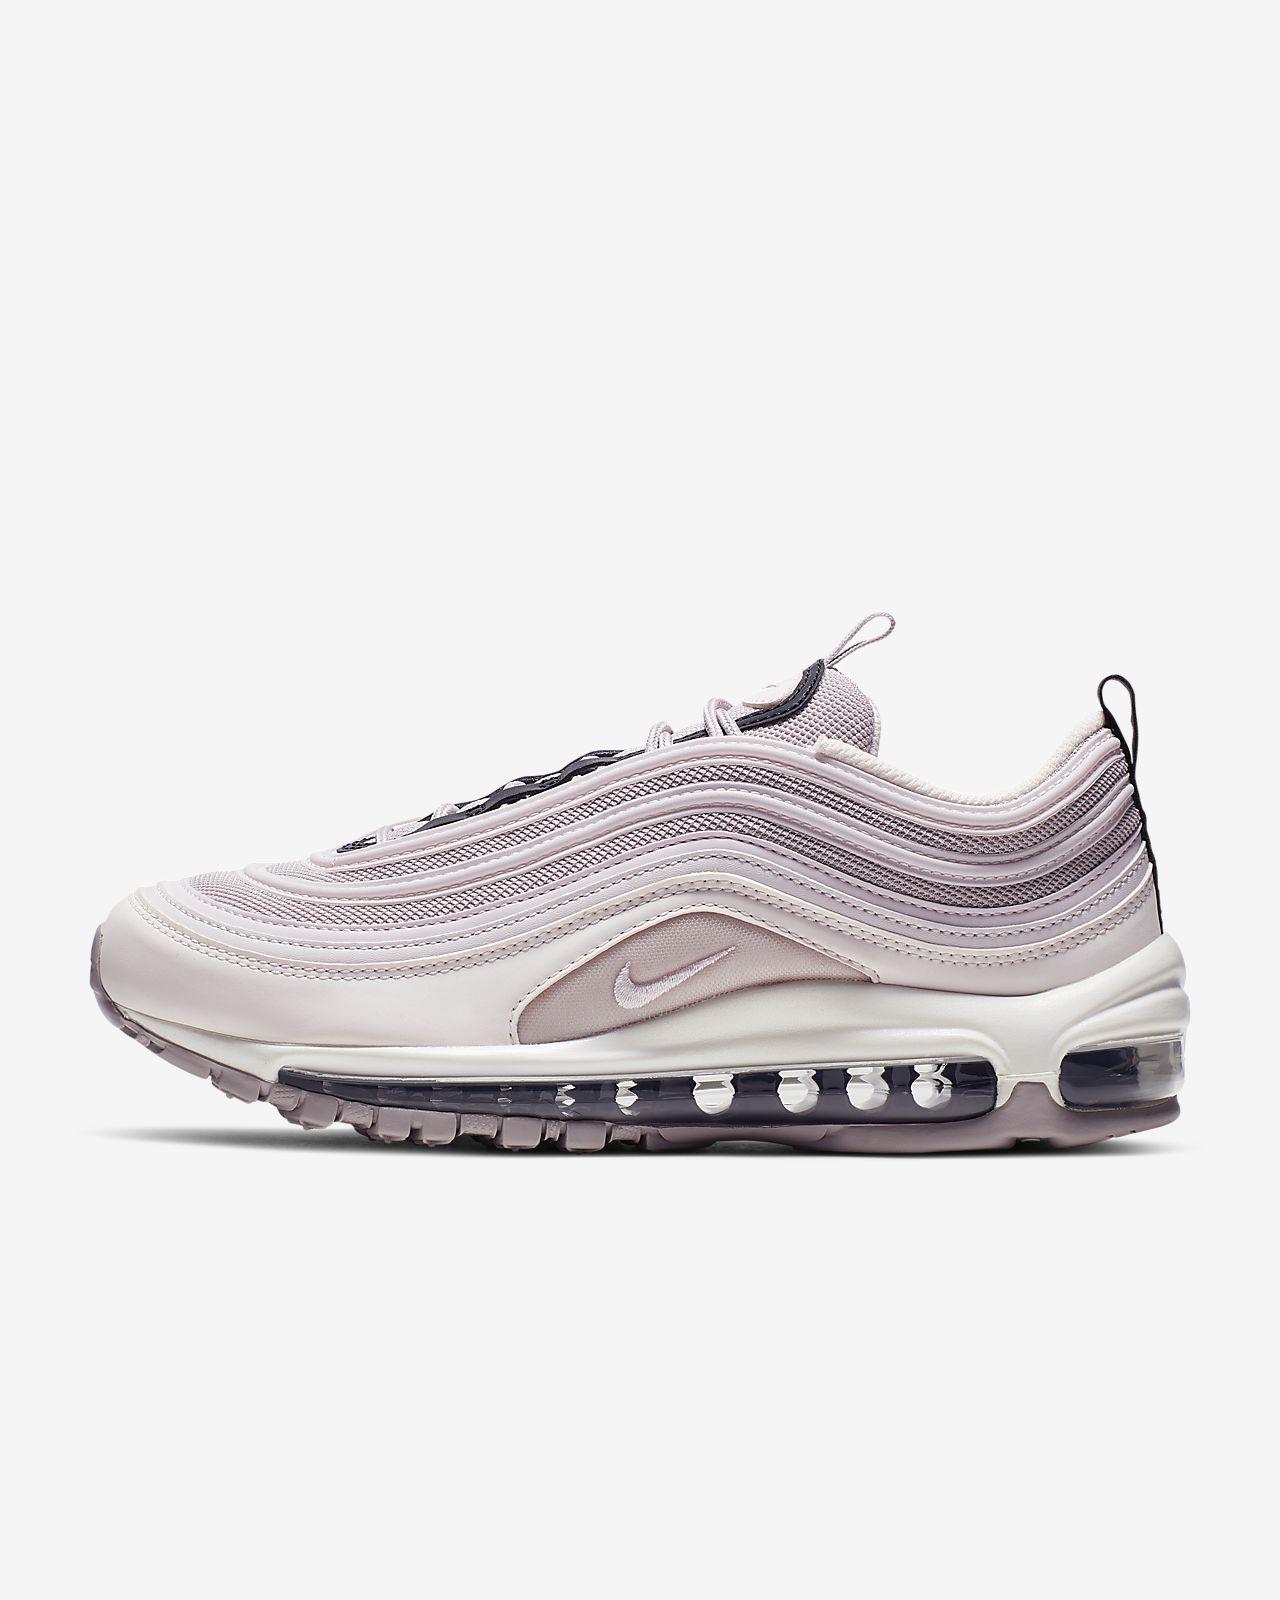 8cadf8e42c Nike Air Max 97 Women's Shoe. Nike.com